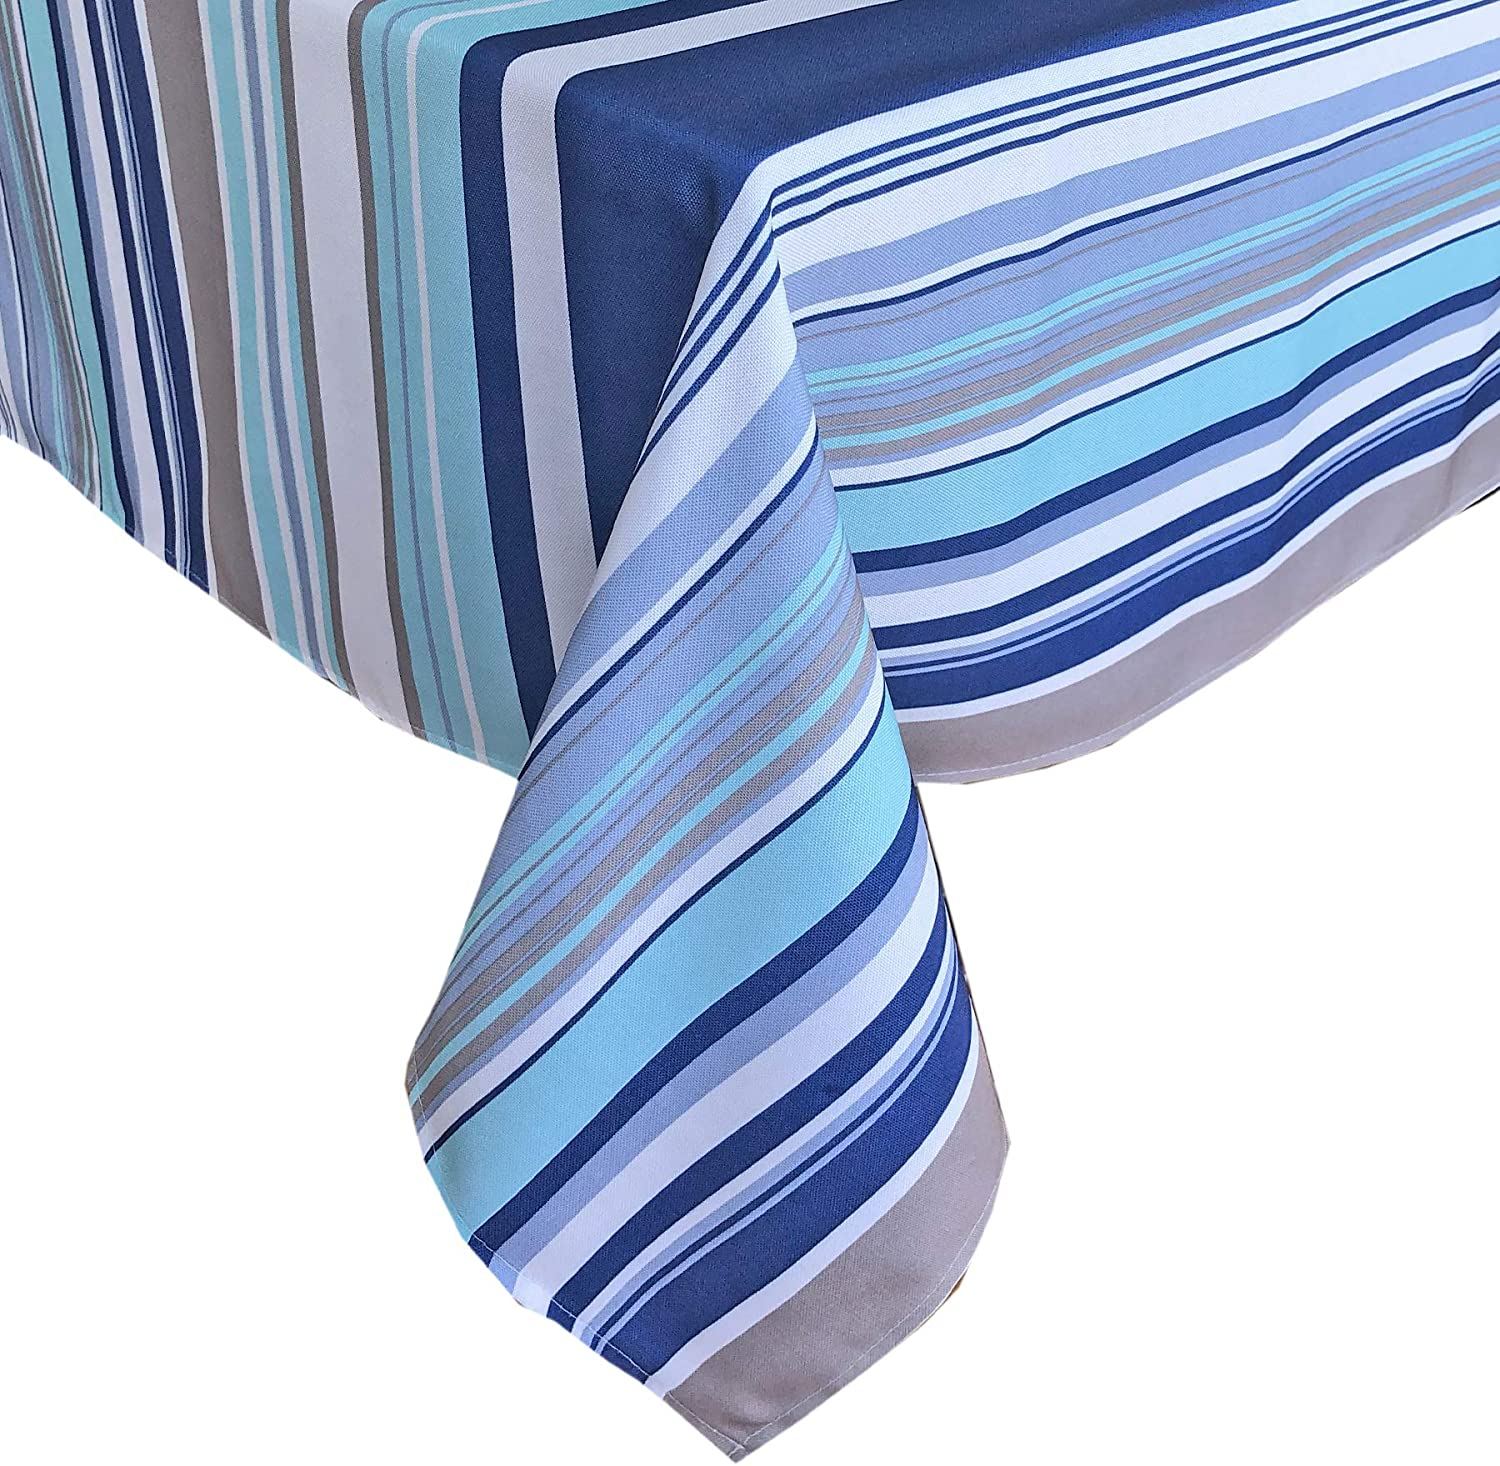 Newbridge Ocean Breeze Stripe Indoor/Outdoor Fabric Tablecloth - Blue and Grey Beach Stripe Soil Resistant, Water Repellent Fabric Tablecloth, 60 Inch X 84 Inch Oval